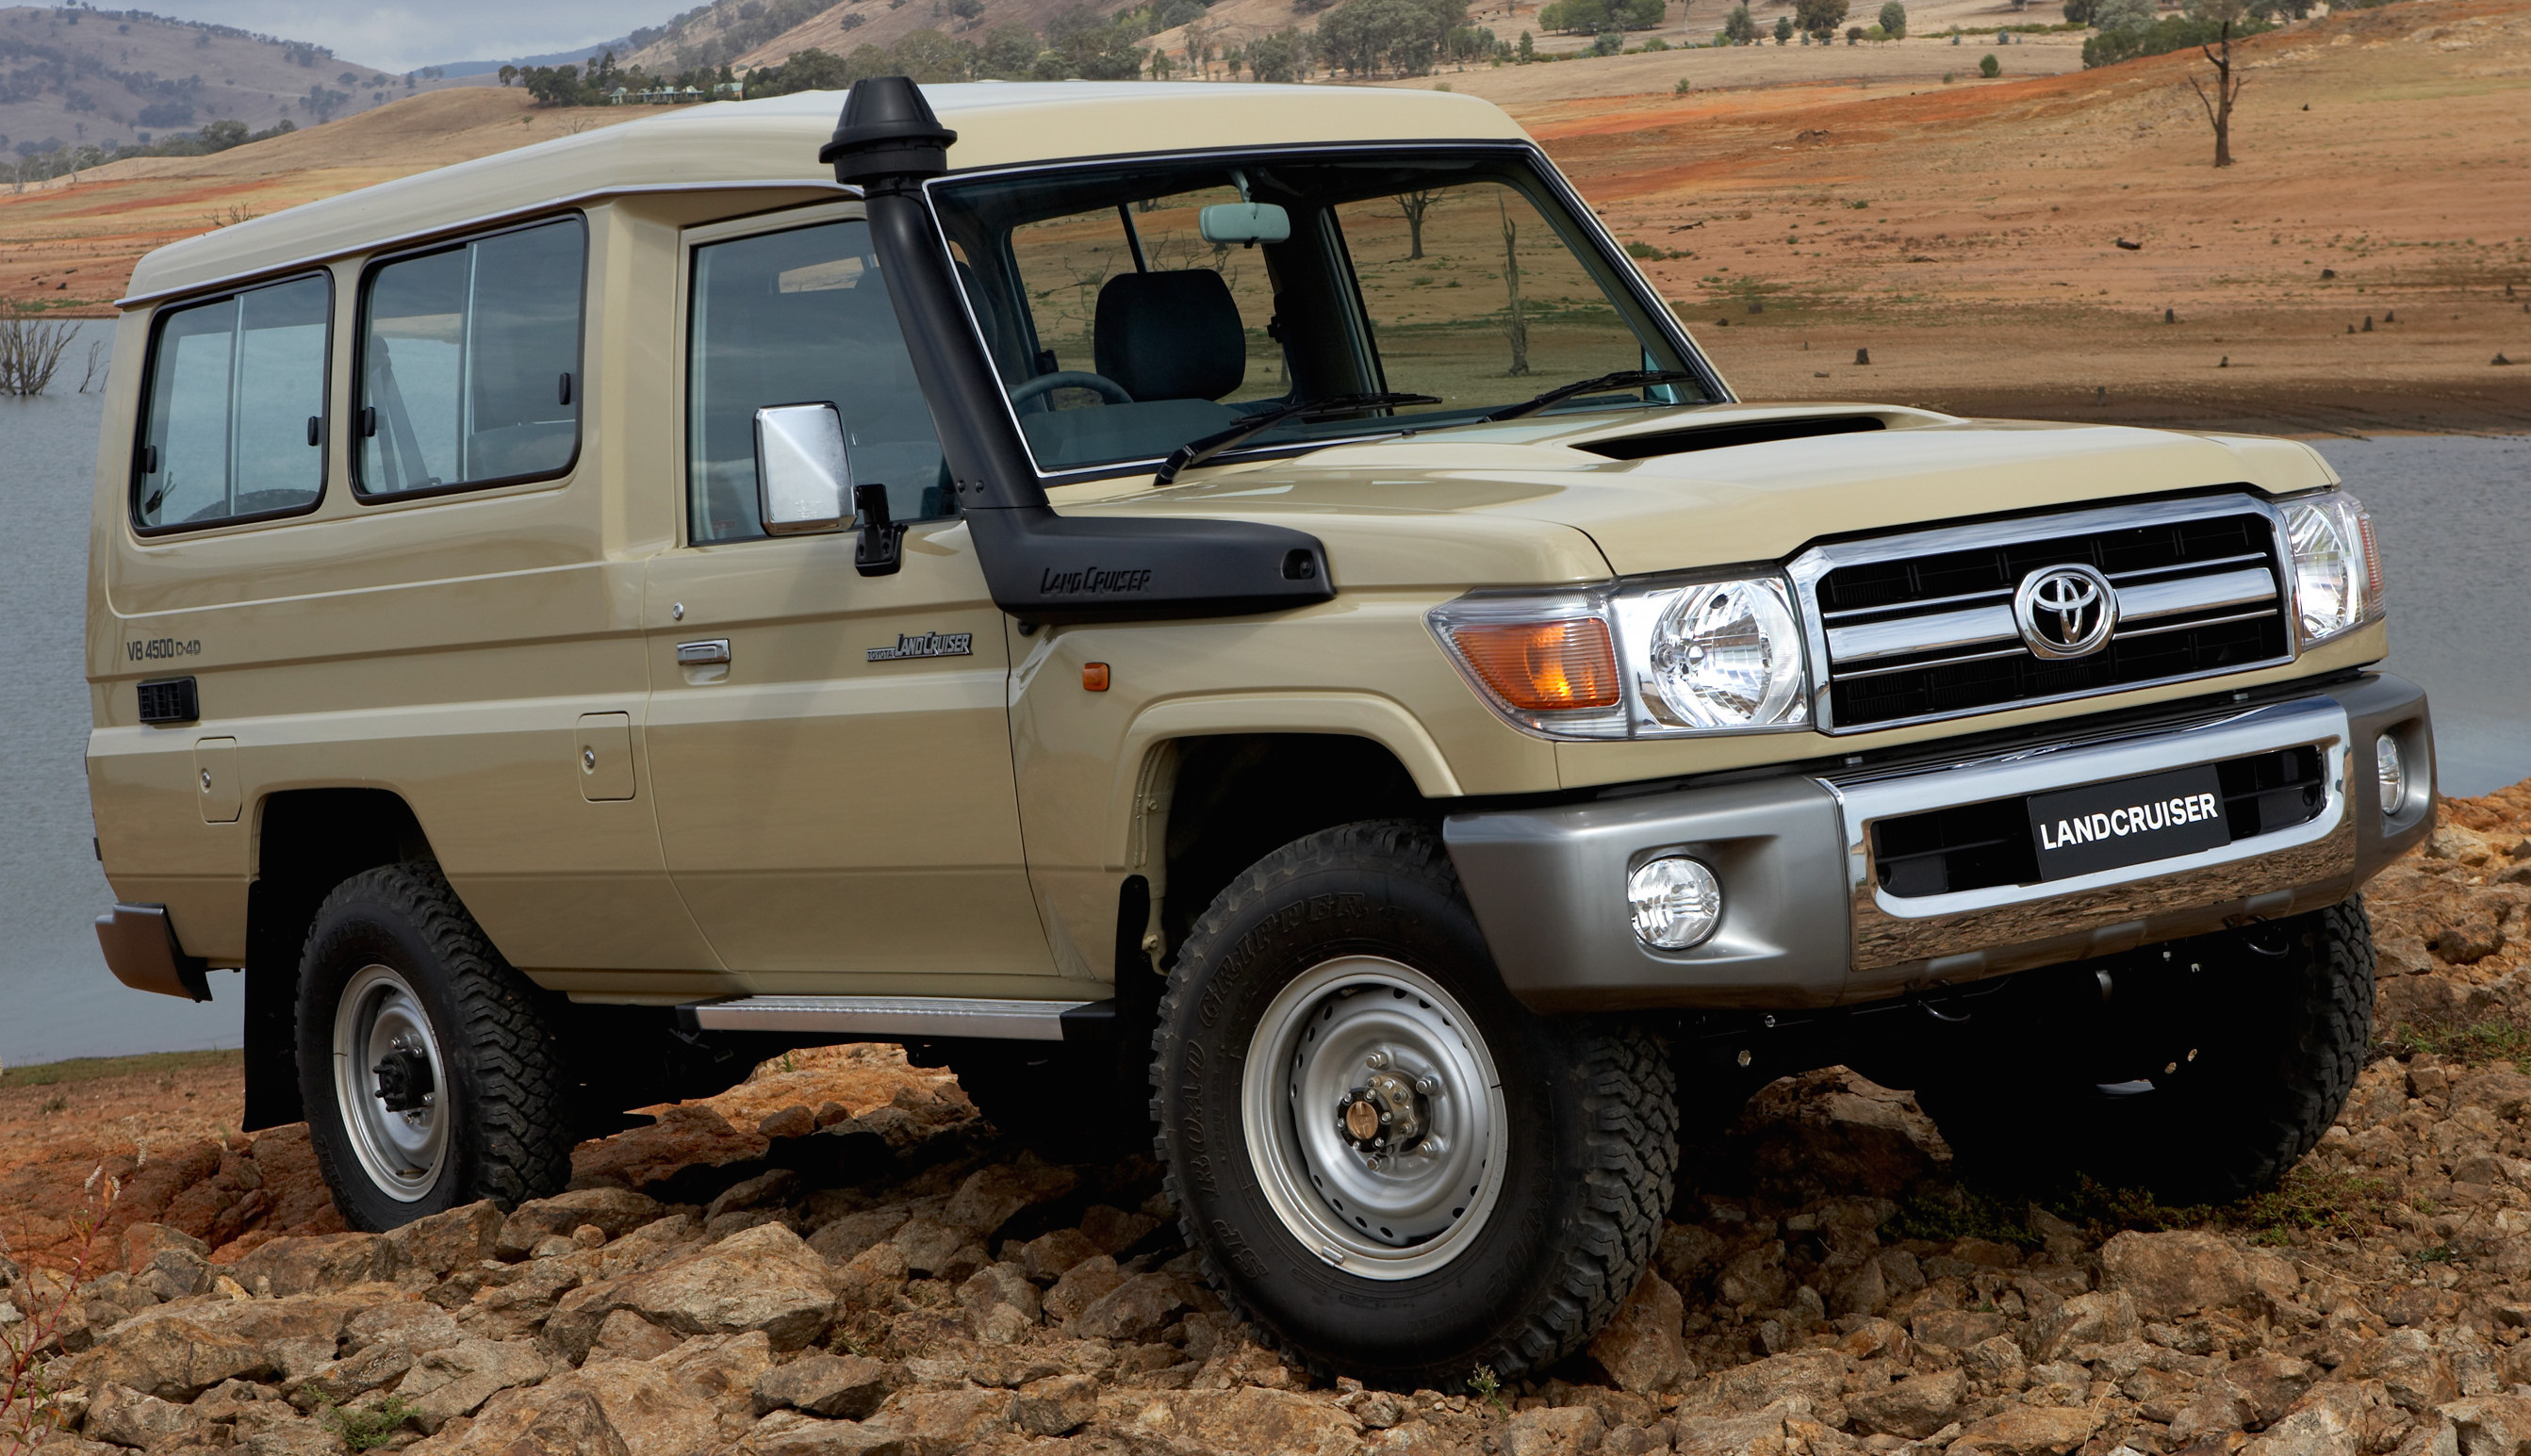 Toyota Land Cruiser 70 Series >> Toyota Land Cruiser 70 set to be 5-star ANCAP-rated Paul Tan - Image 383177